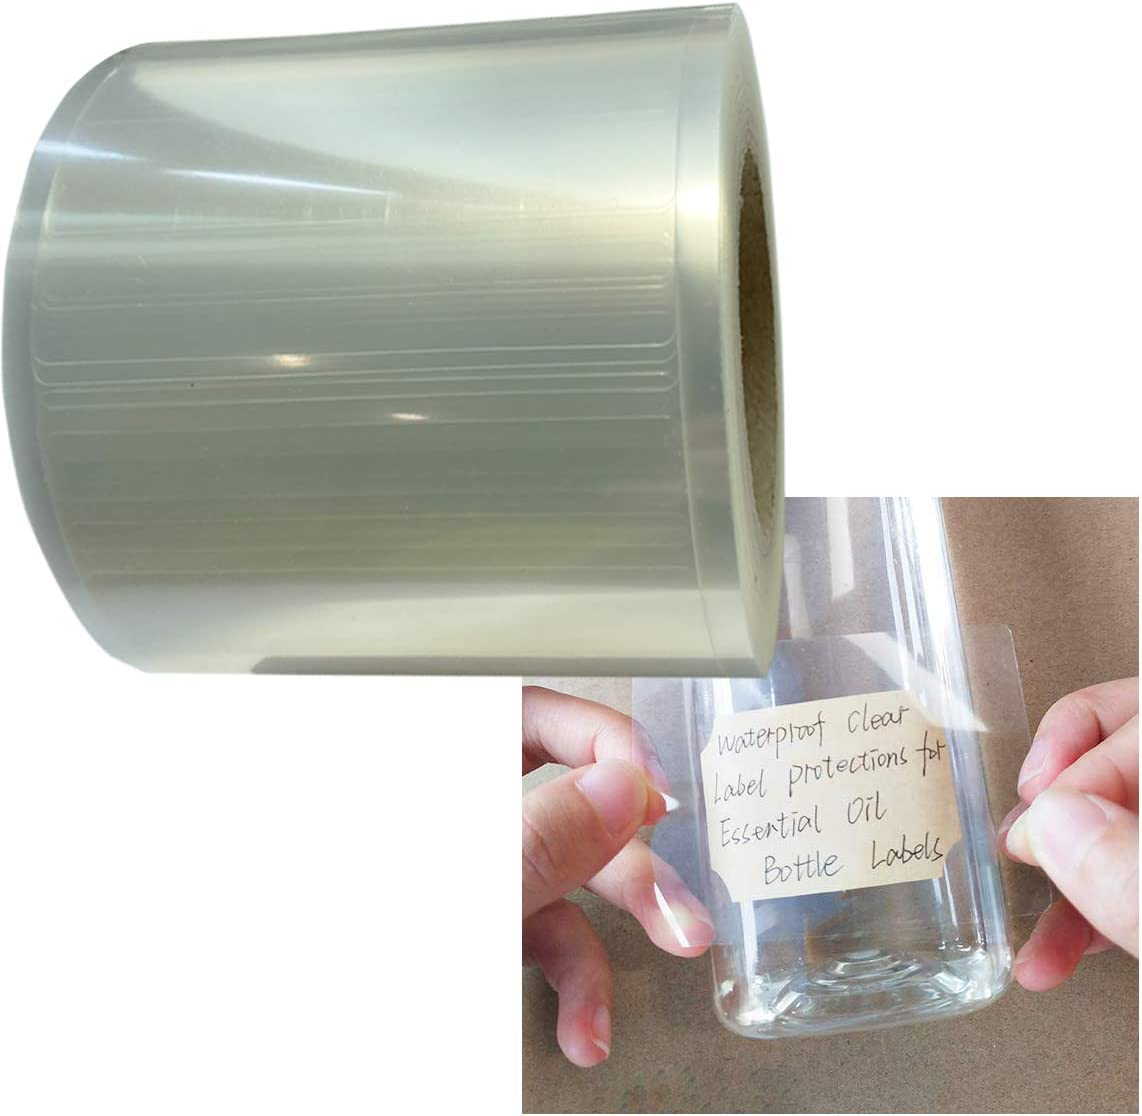 2.5x1.6 Inch Clear Waterproof Label Protectors for Essential Oil Bottle Labels and Food Jars Labels - 300 Barcode Label Protectors/Roll